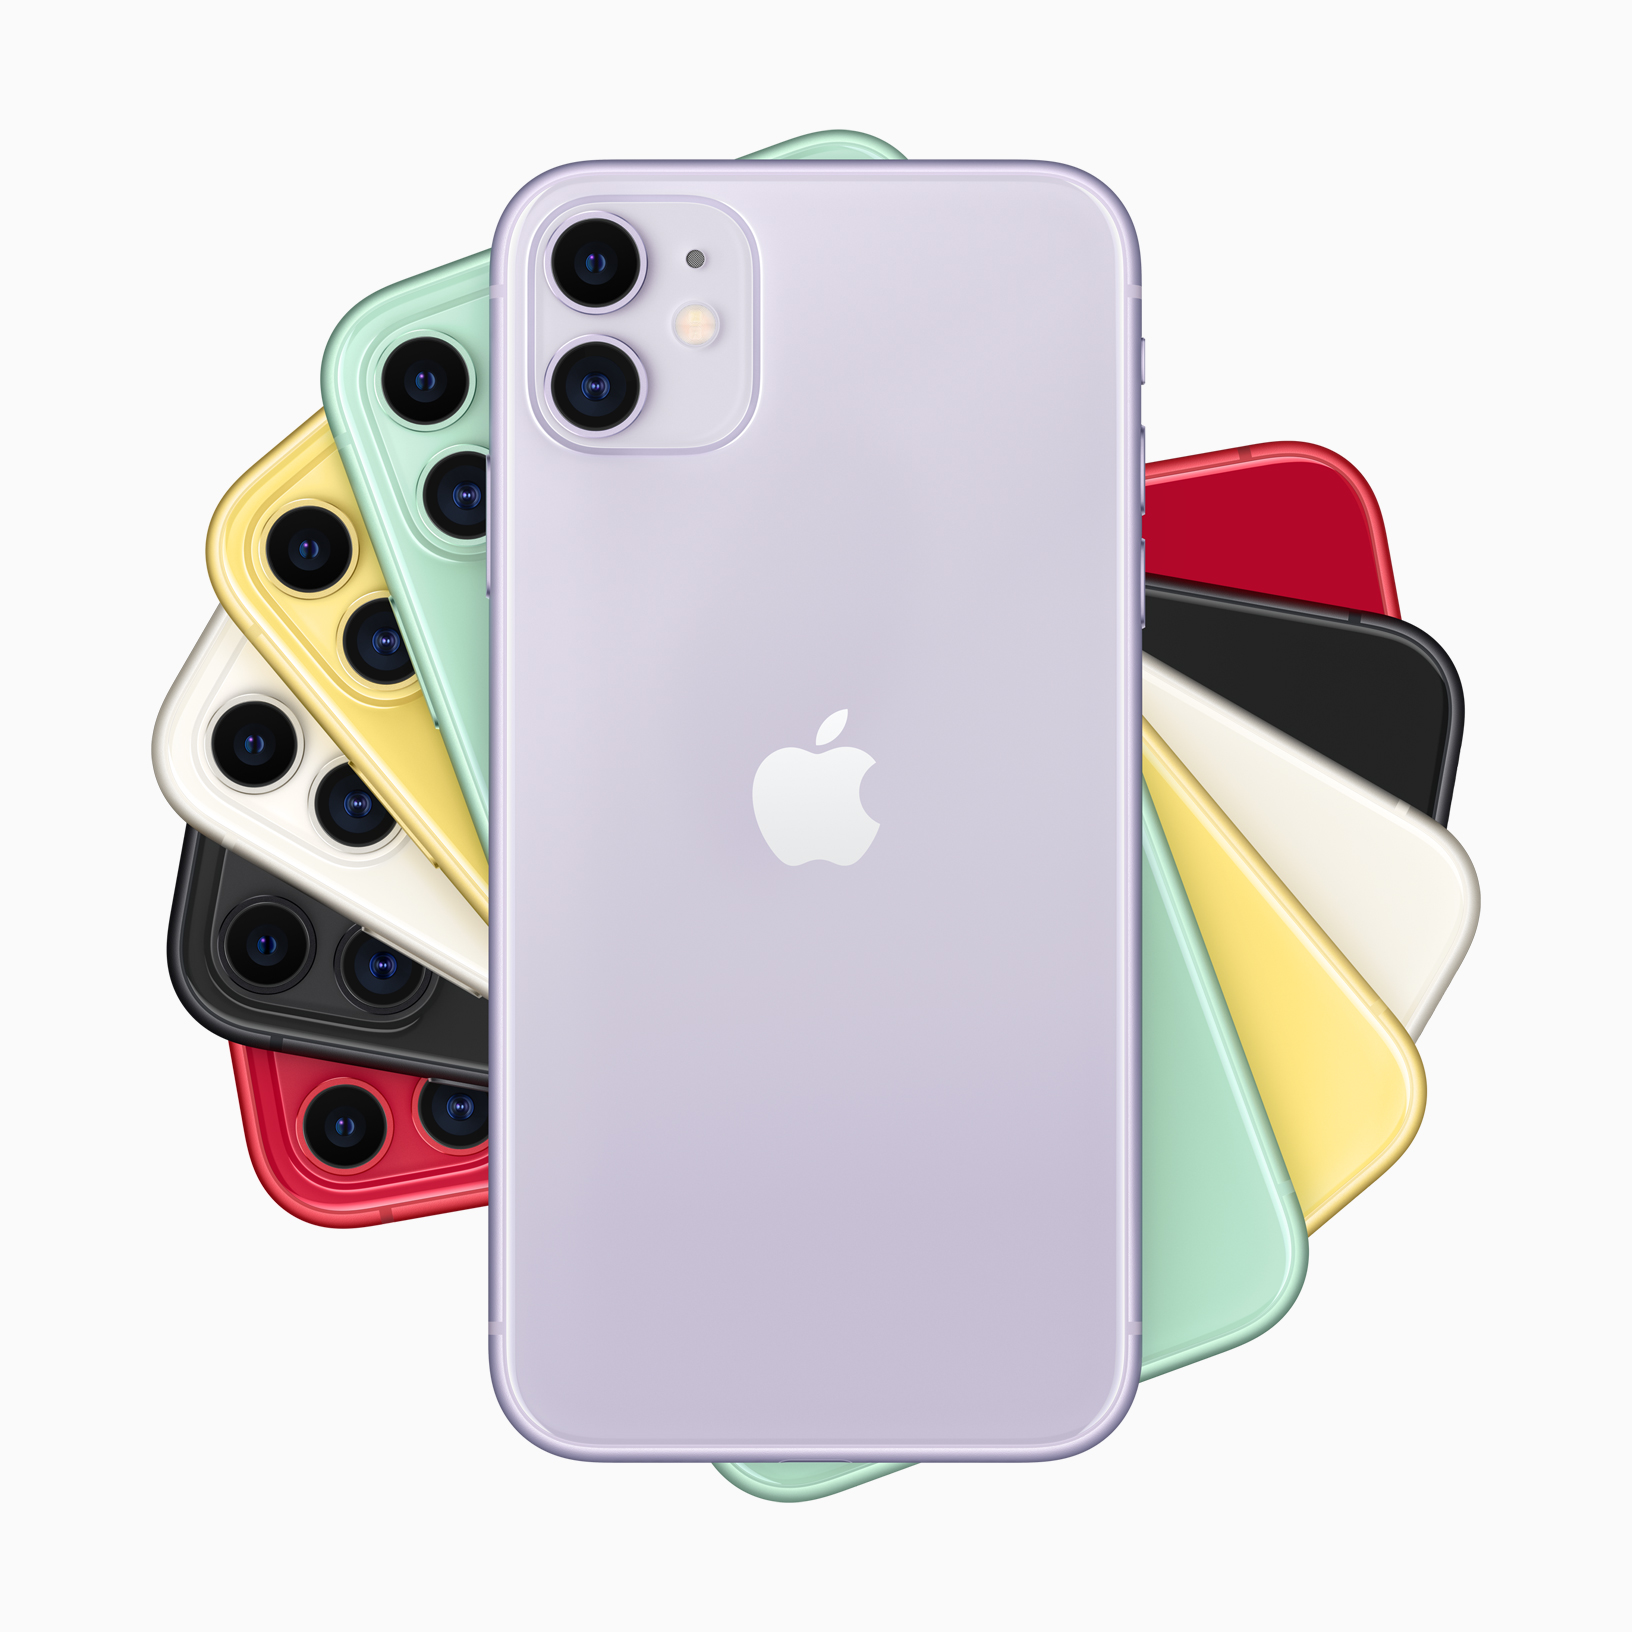 iPhone 11 rosette family